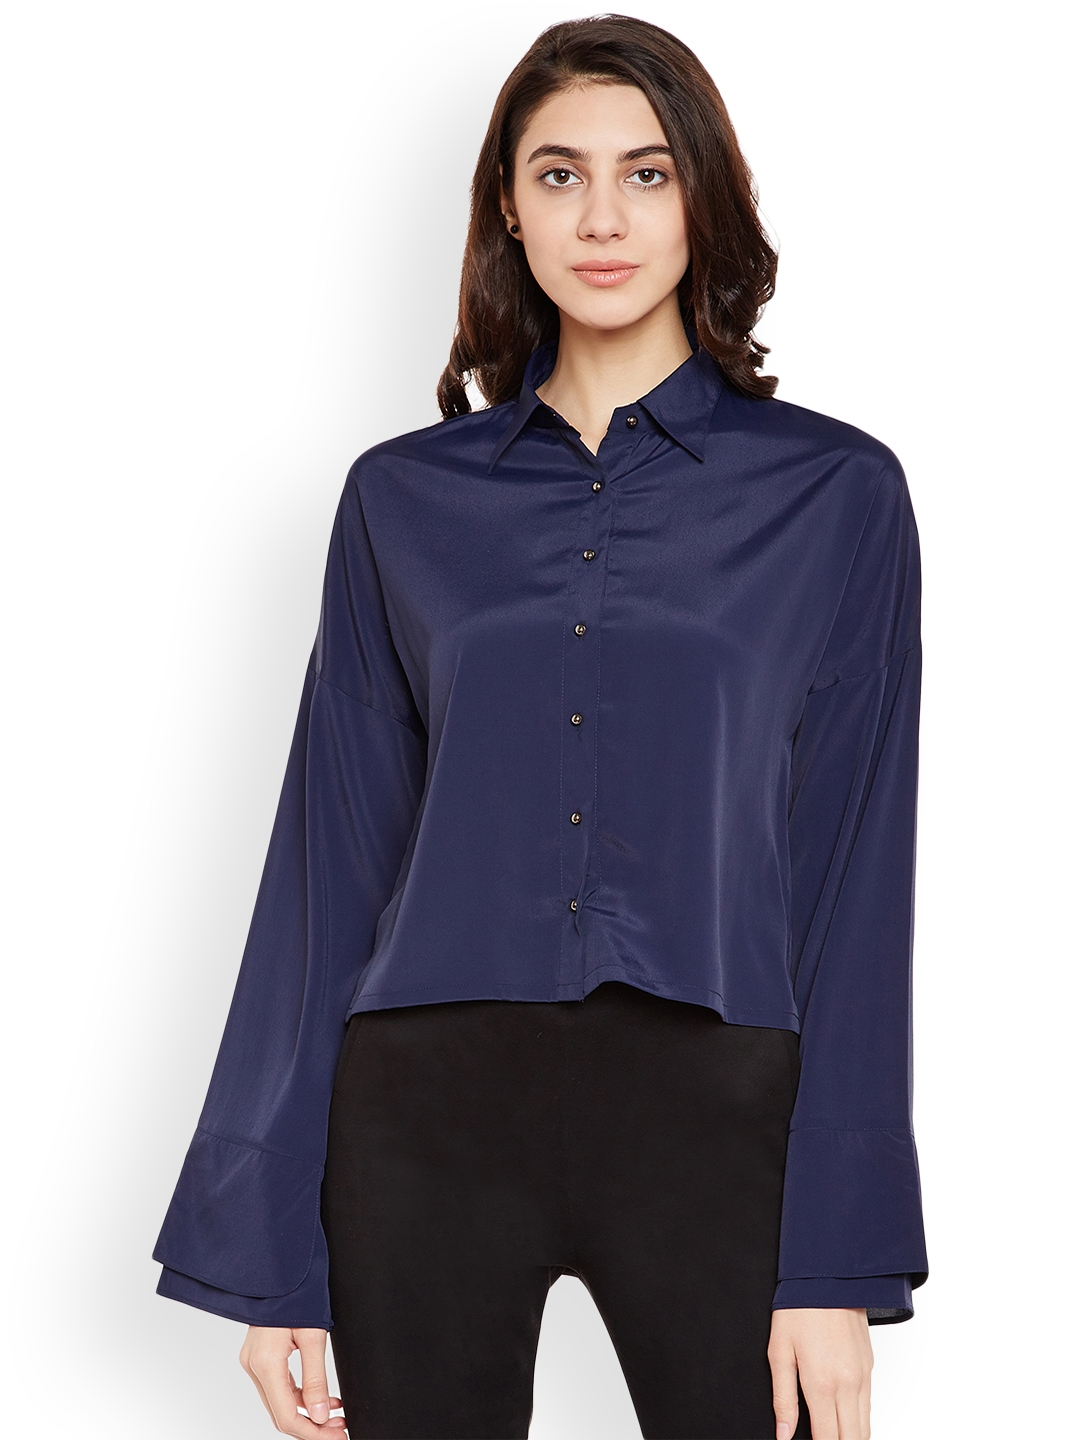 77f49de1d68 Buy PRIMO KNOT Women Navy Blue Solid Shirt Style Top - Tops for ...